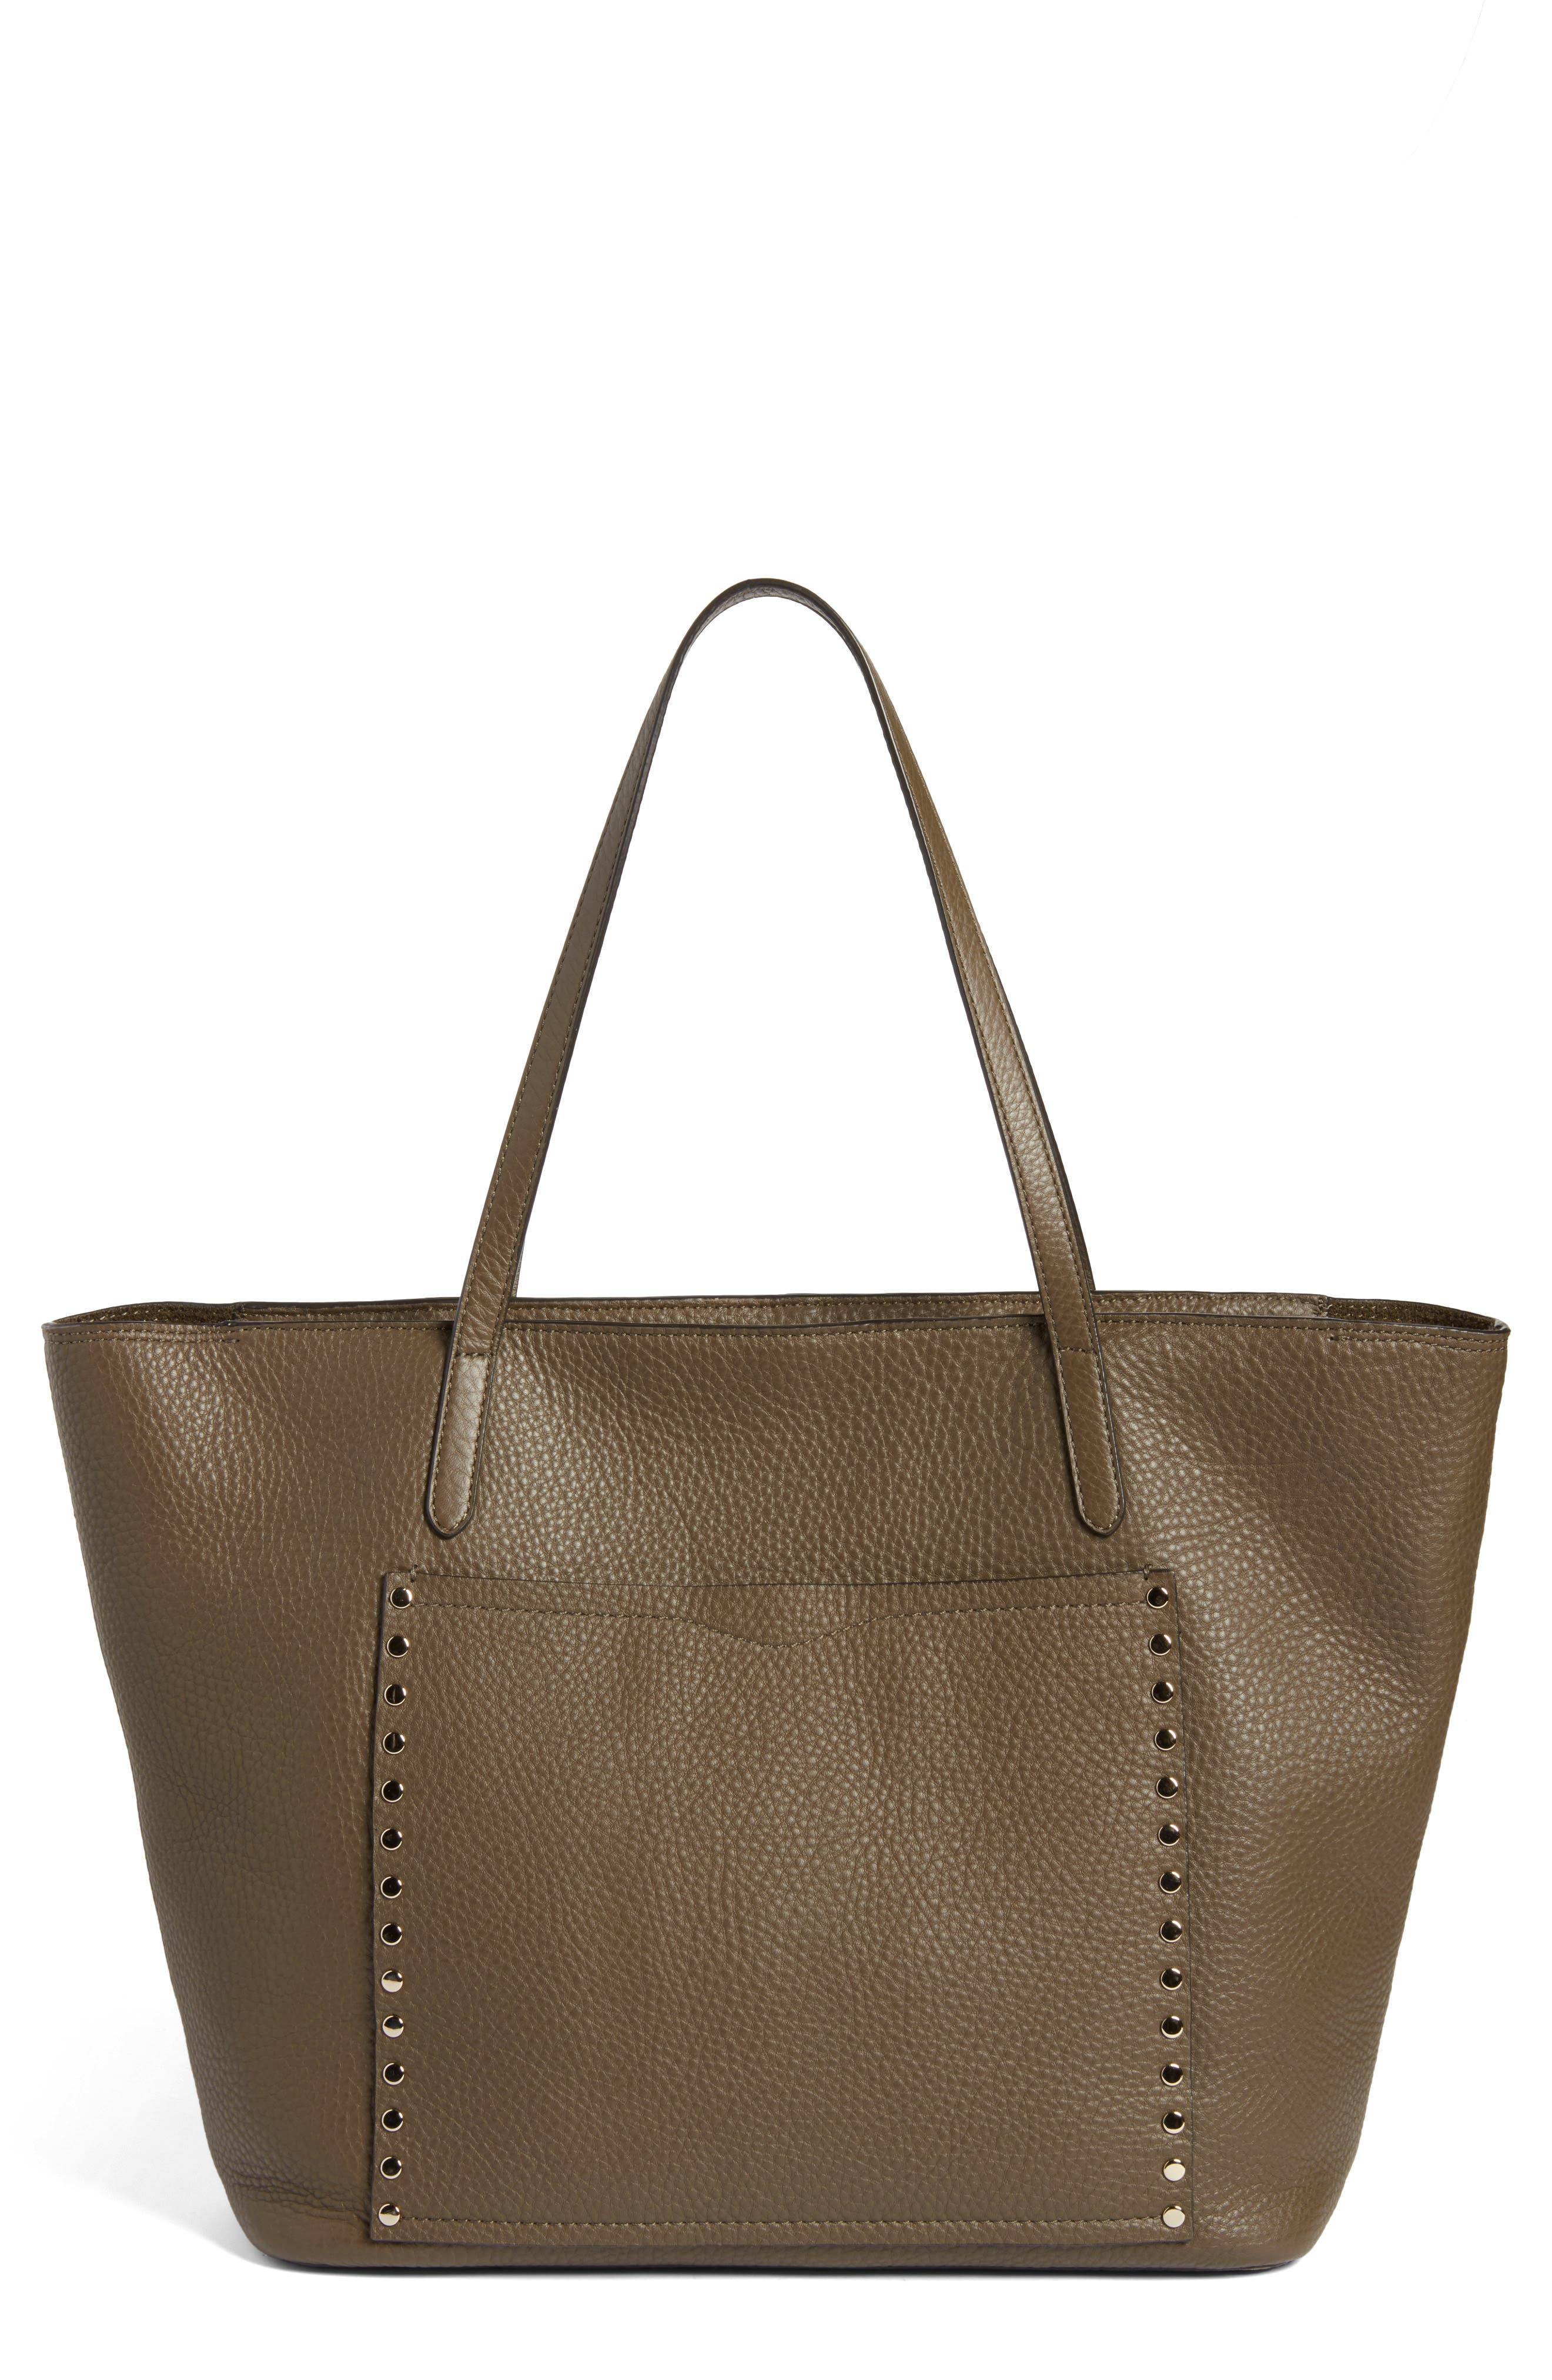 Rebecca Minkoff Unlined Front Pocket Leather Tote (Nordstrom Exclusive)